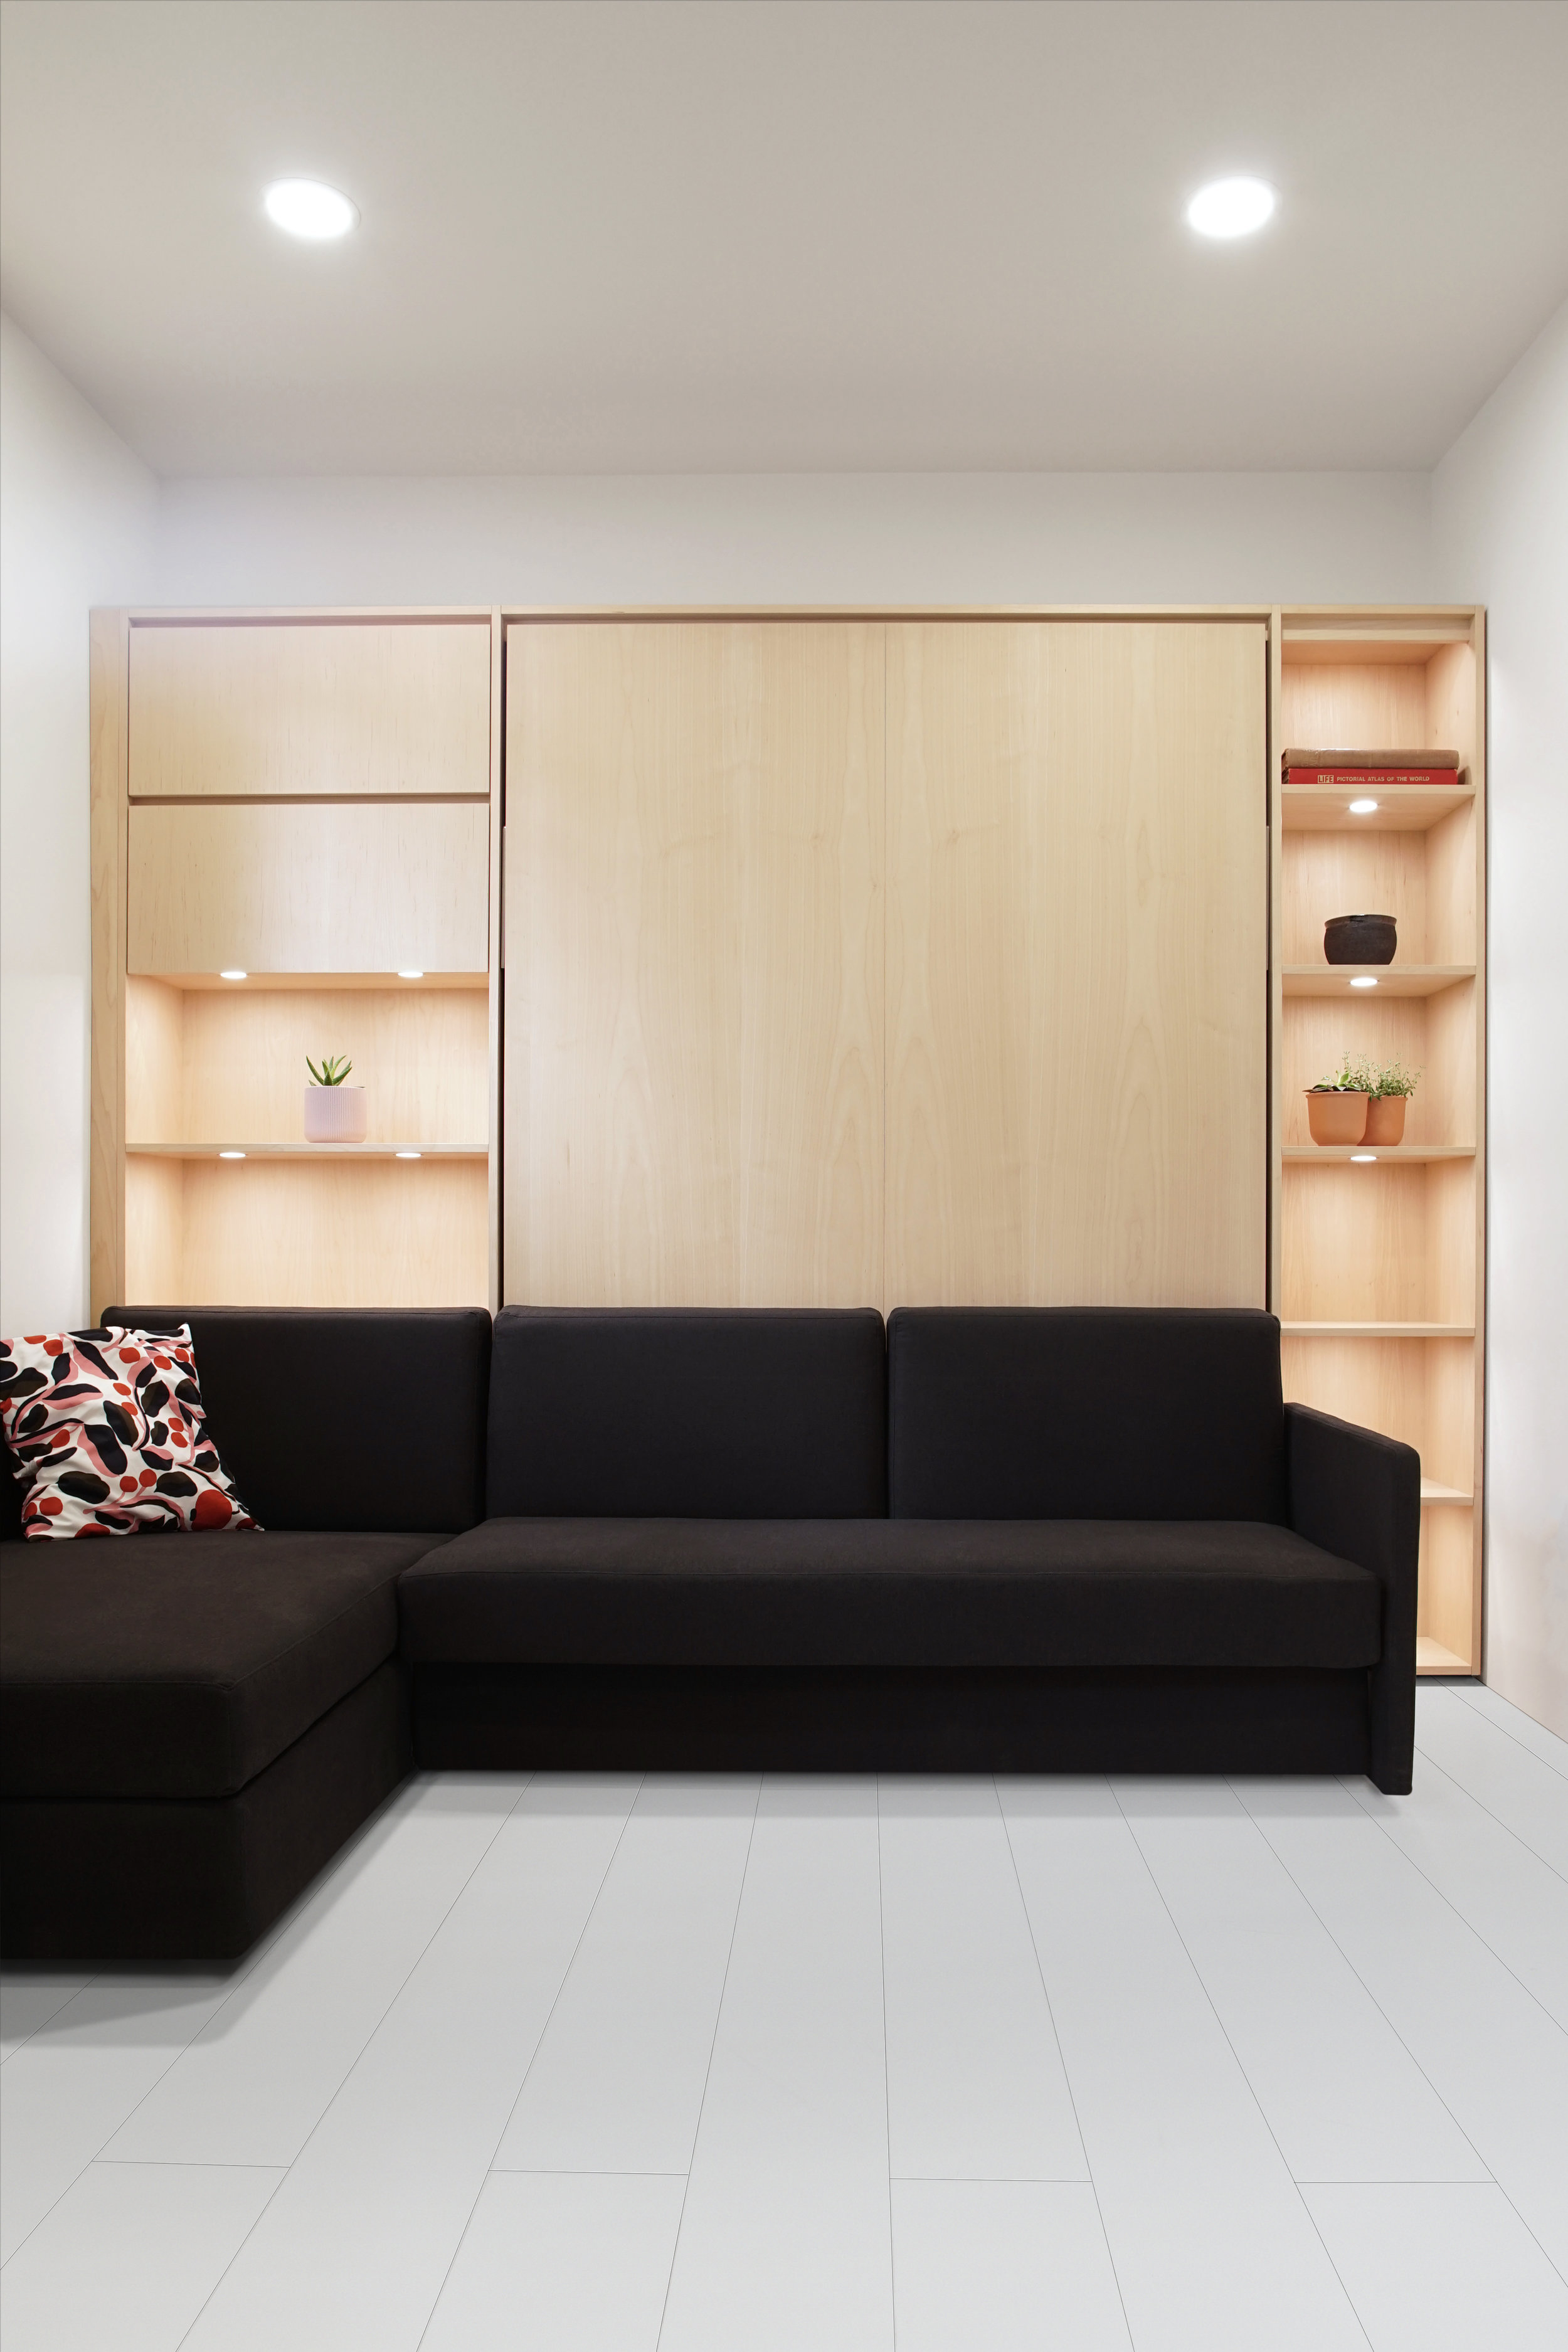 WALLBED Murphy BED CUSTOM FURNITURE BUILT-IN CABINETRY VANCOUVER INTERIOR DESIGN ANTHILL